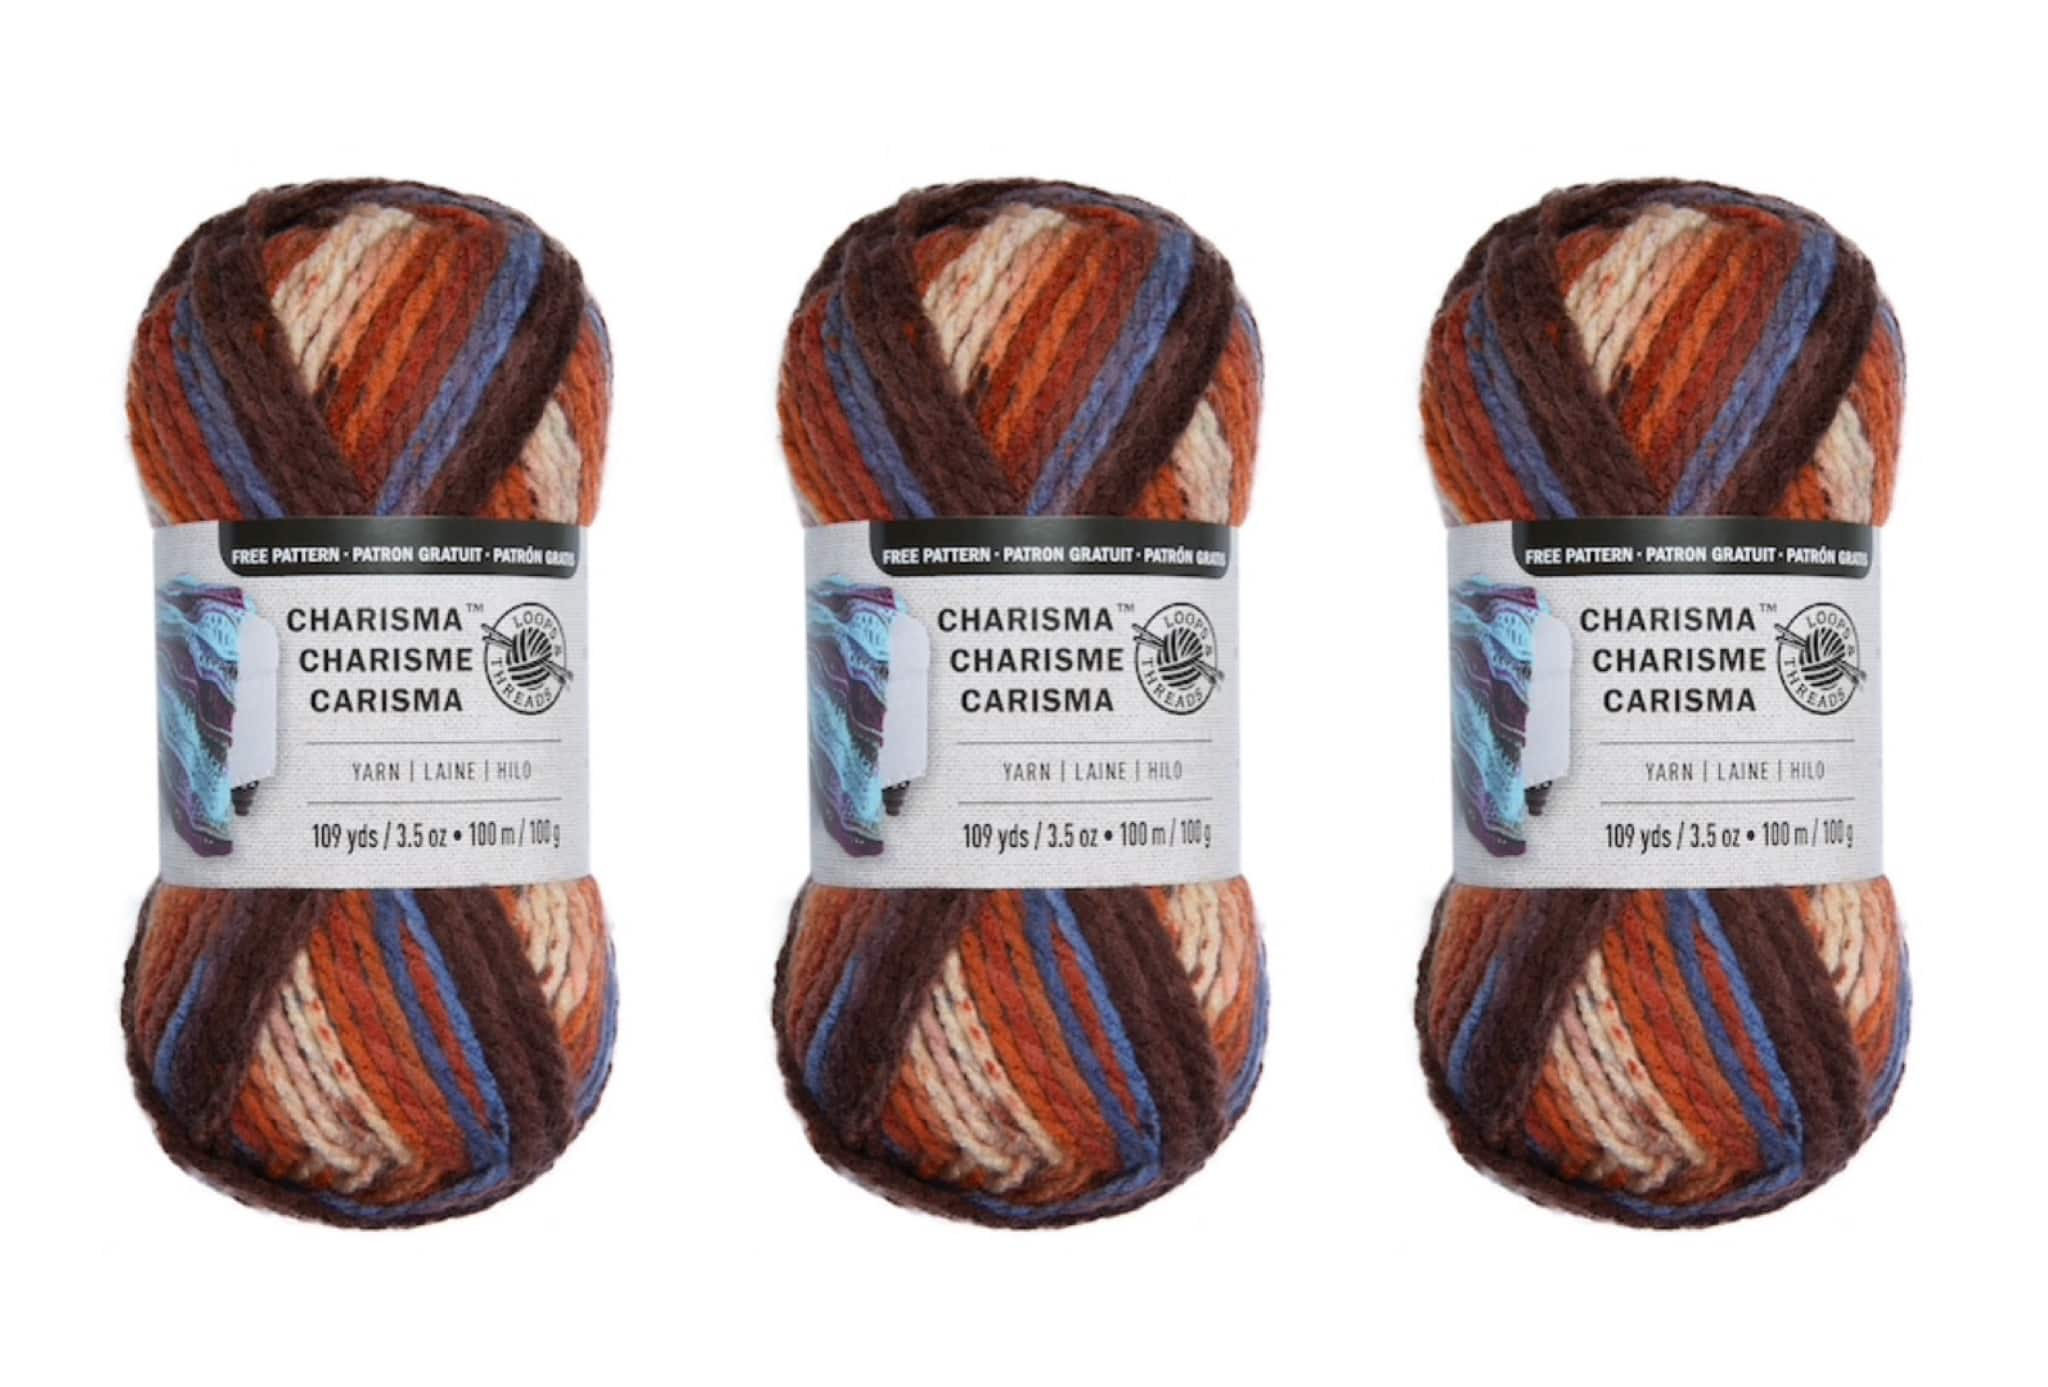 Charisma Yarn by Loops & Threads 3 for $4.29 ($1.43 each), Loops & Threads Impeccable Yarn $1.59 + Free Store Pickup at Michaels